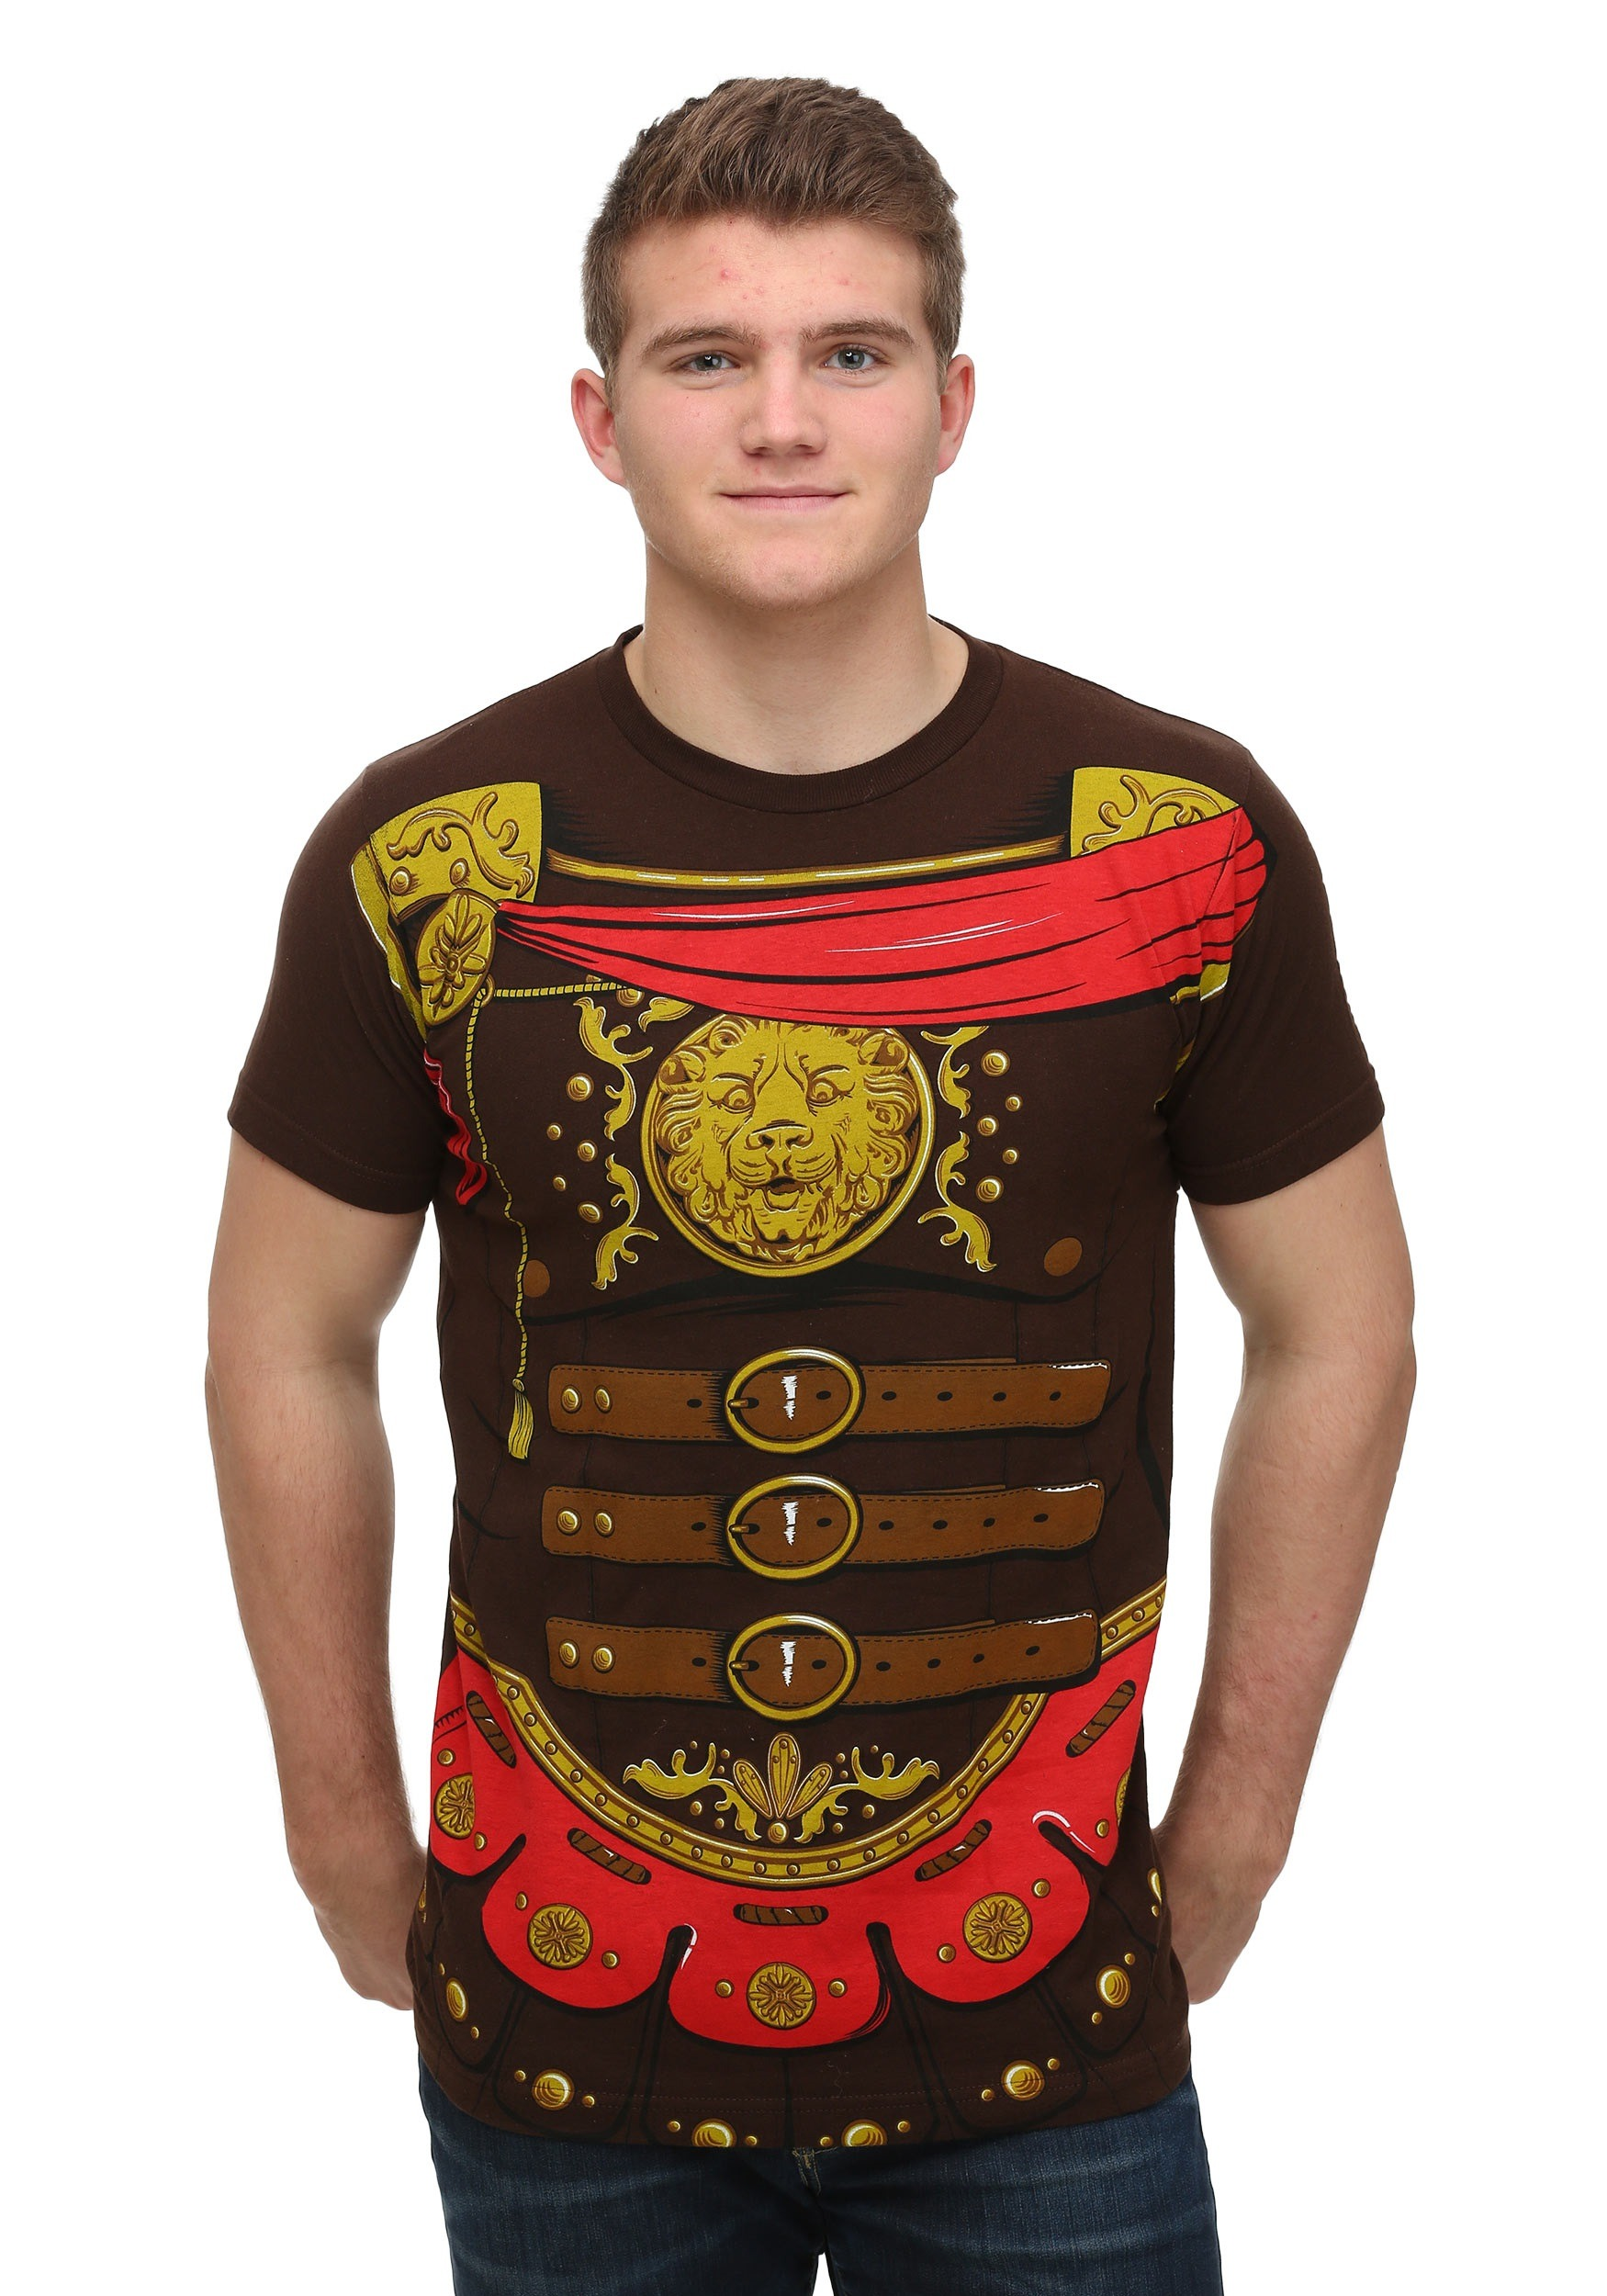 Gladiator Costume T-Shirt